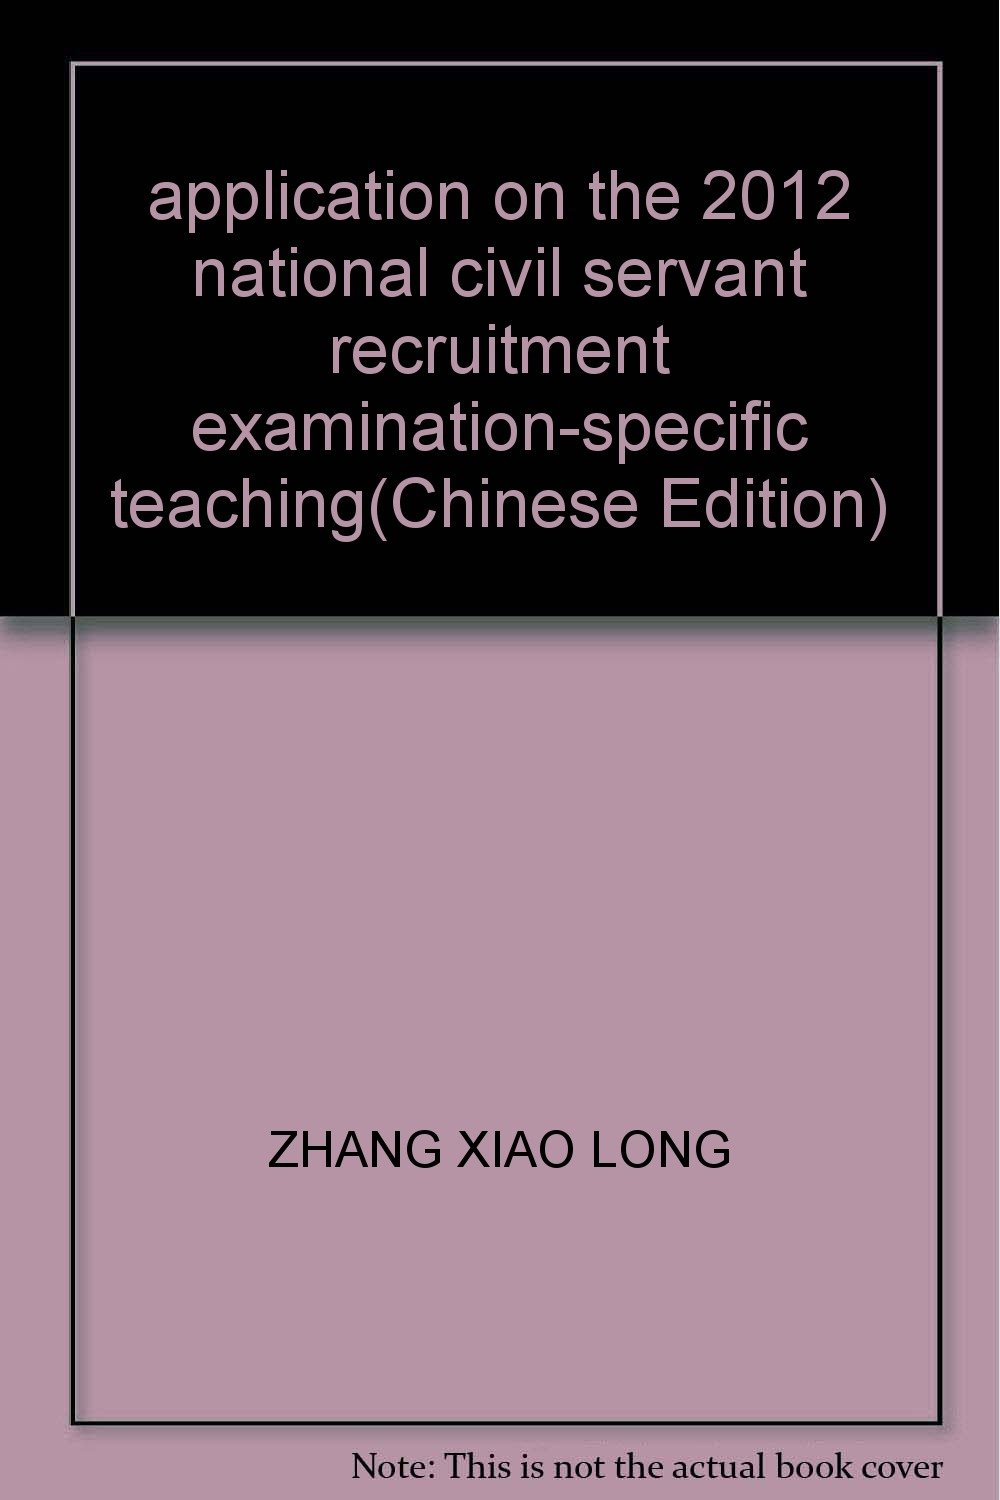 Download application on the 2012 national civil servant recruitment examination-specific teaching(Chinese Edition) ebook